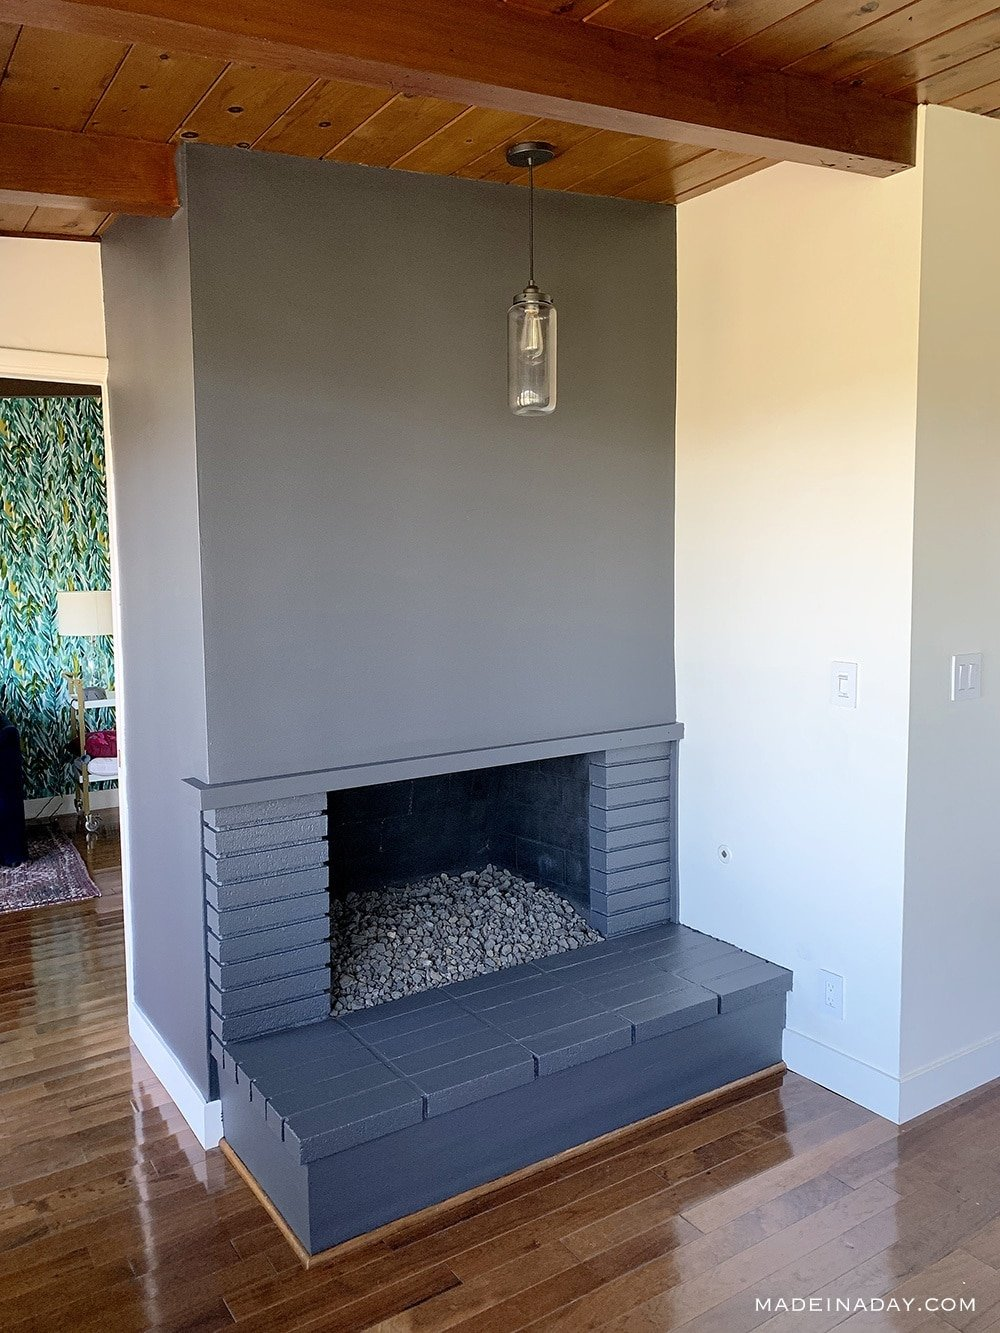 How to Paint a Fireplace, How to Paint Bricks, Painted hearth, mid century modern grey fireplace, paint fireplace same color as wall, fireplace accent wall,